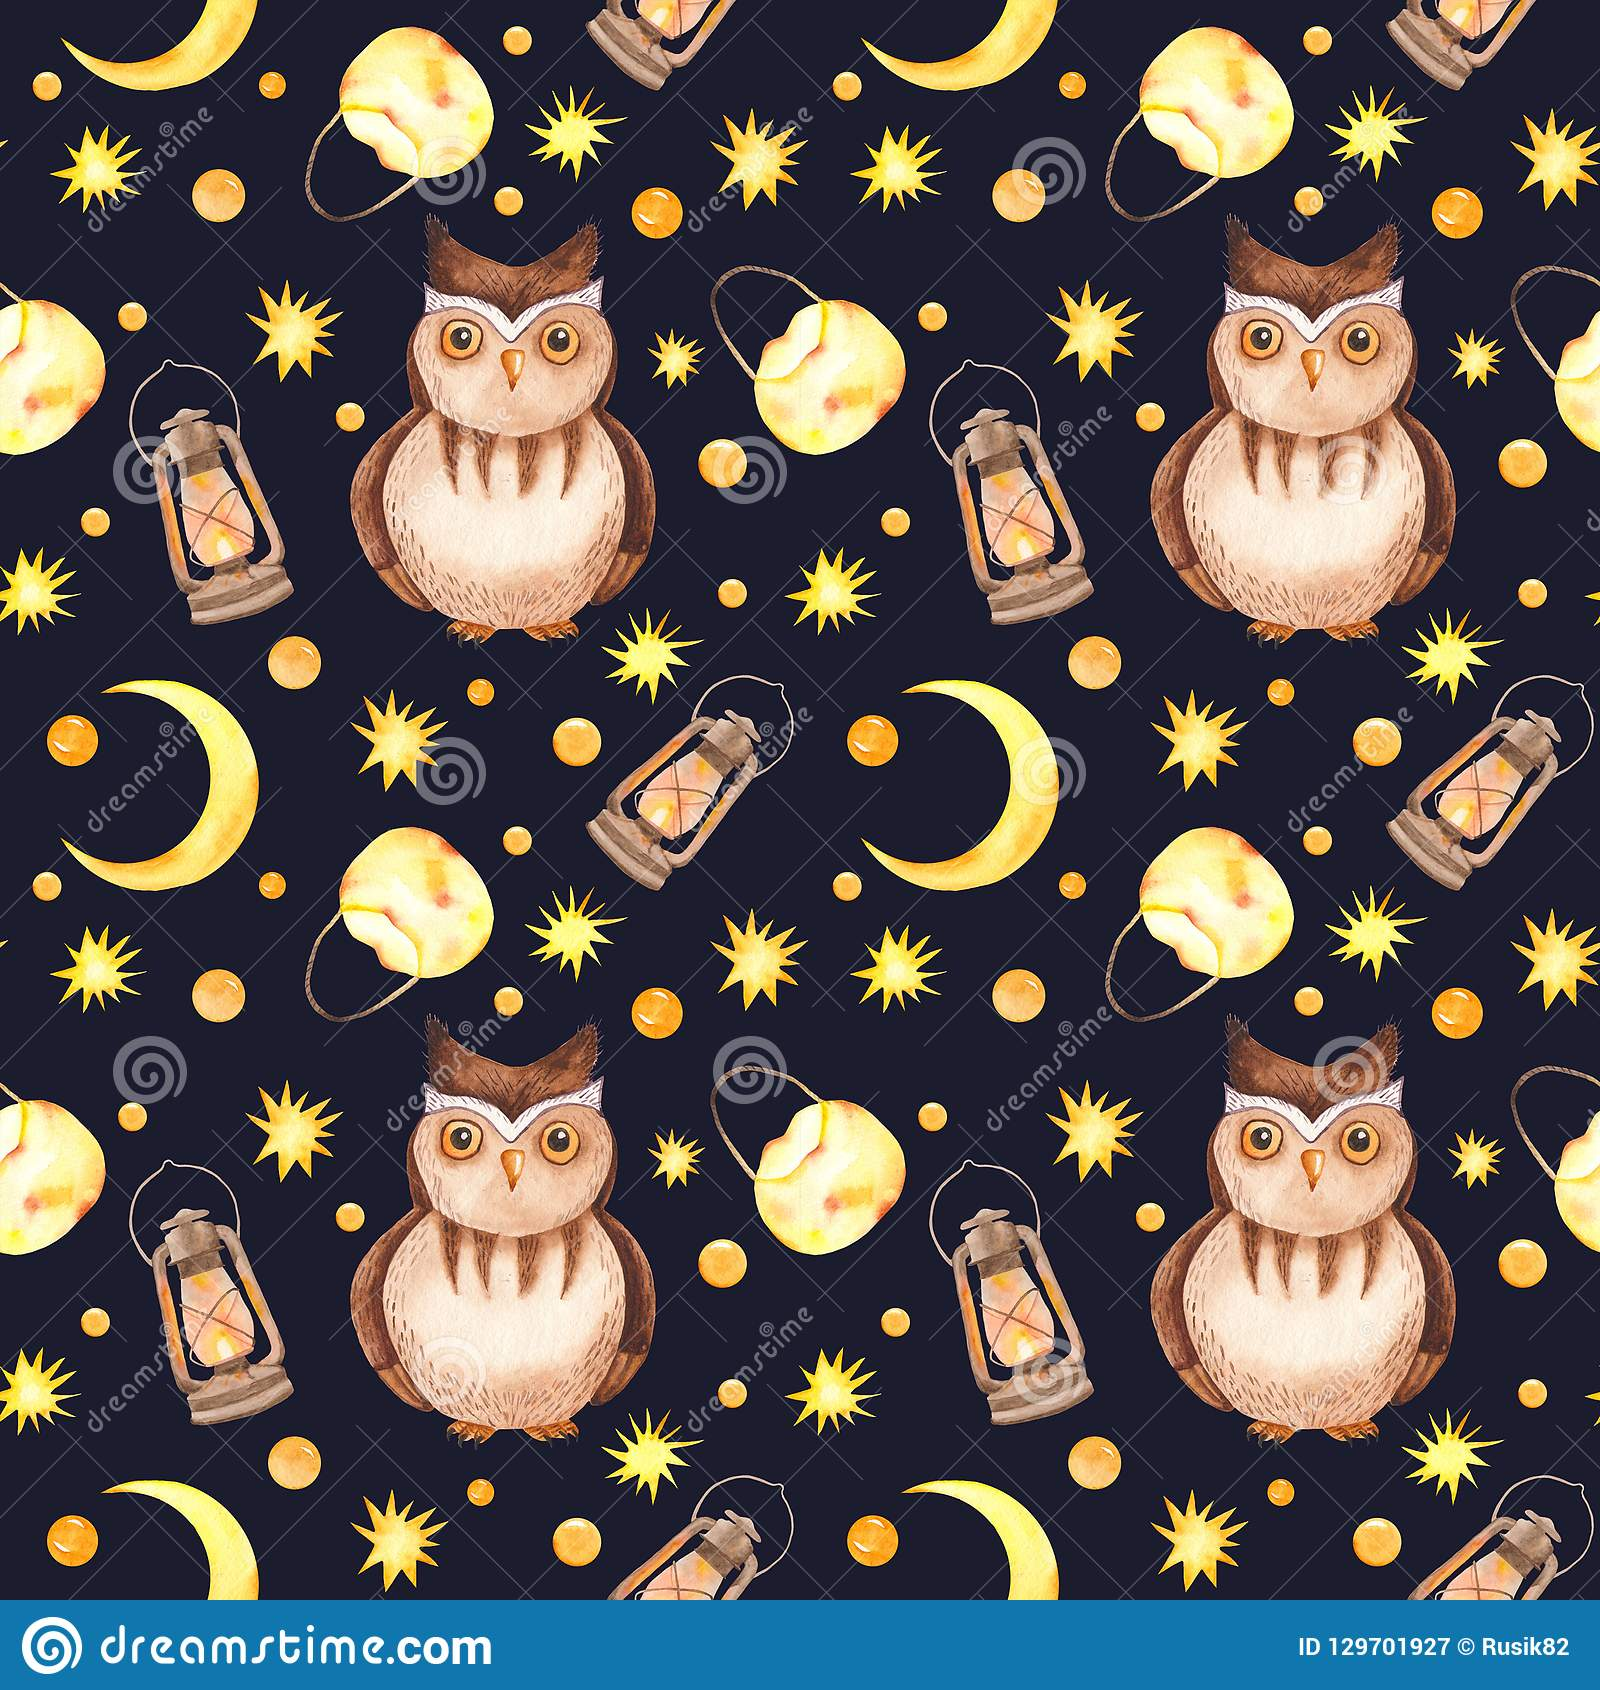 Lanterns Wallpaper Watercolor Seamless Pattern With Owl Background Light Moon